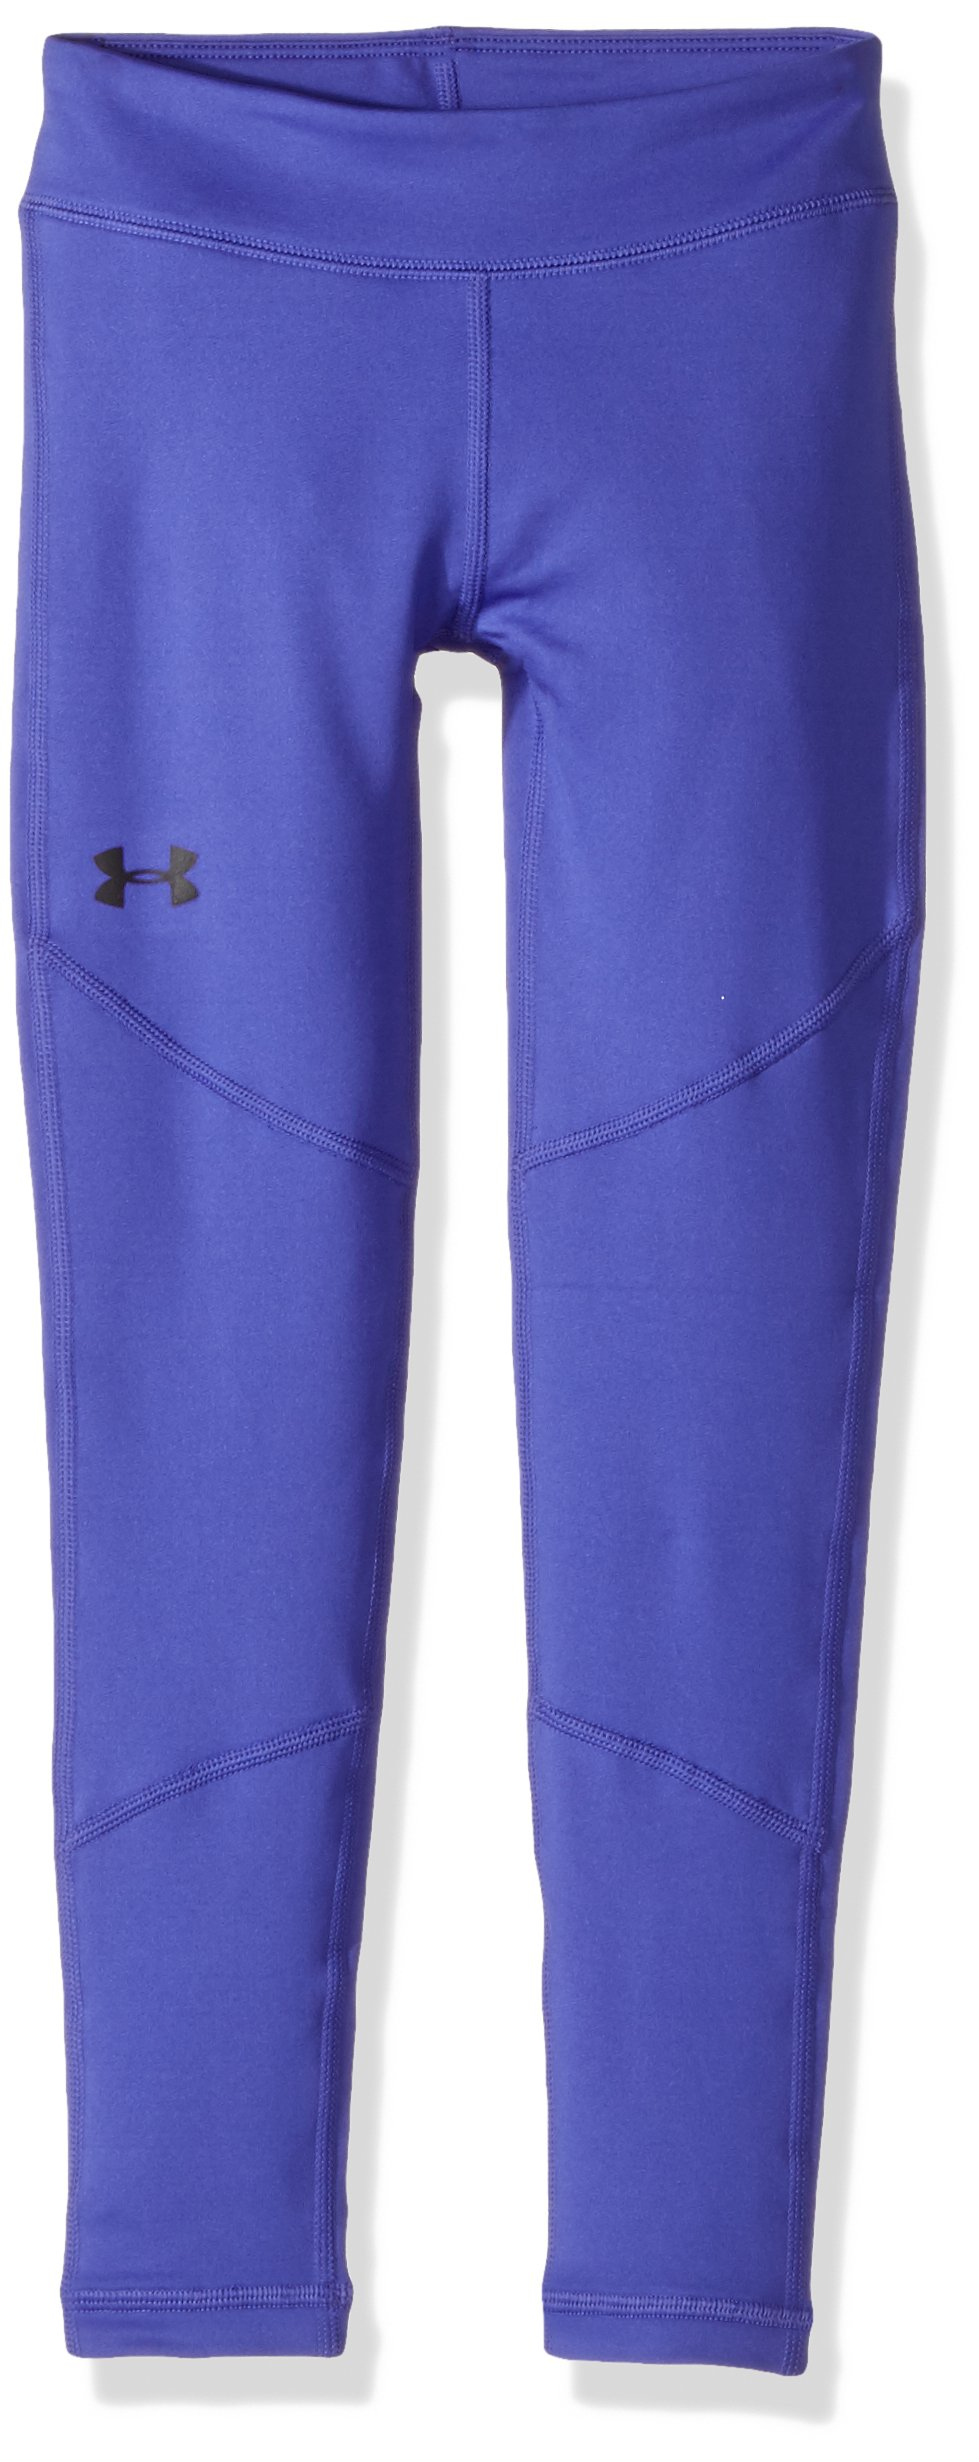 Under Armour Girls' ColdGear Leggings,Constellation Purple (530)/Black, Youth Small